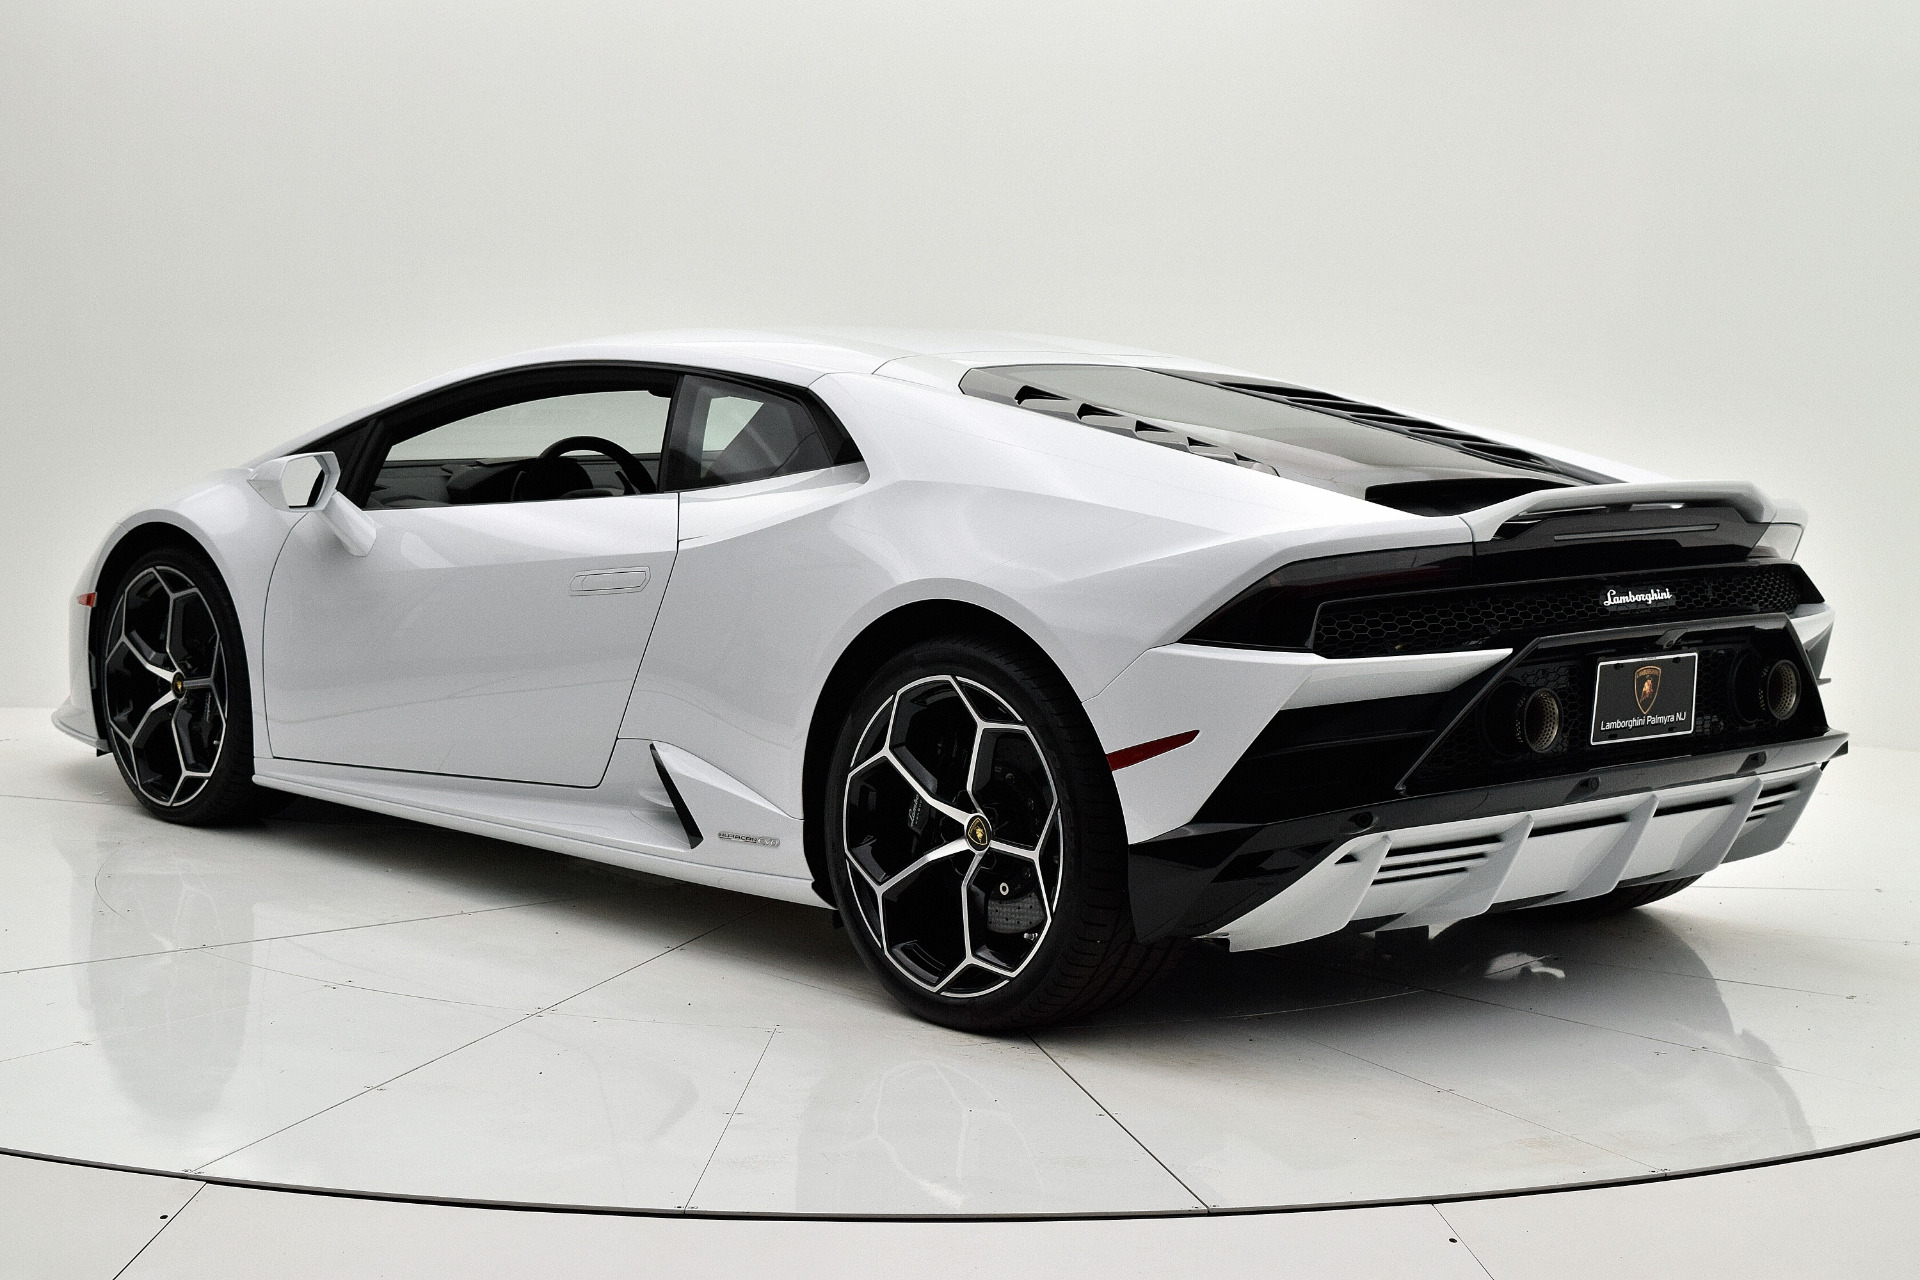 New 2020 Lamborghini Huracan Evo Lp 640 4 Evo For Sale